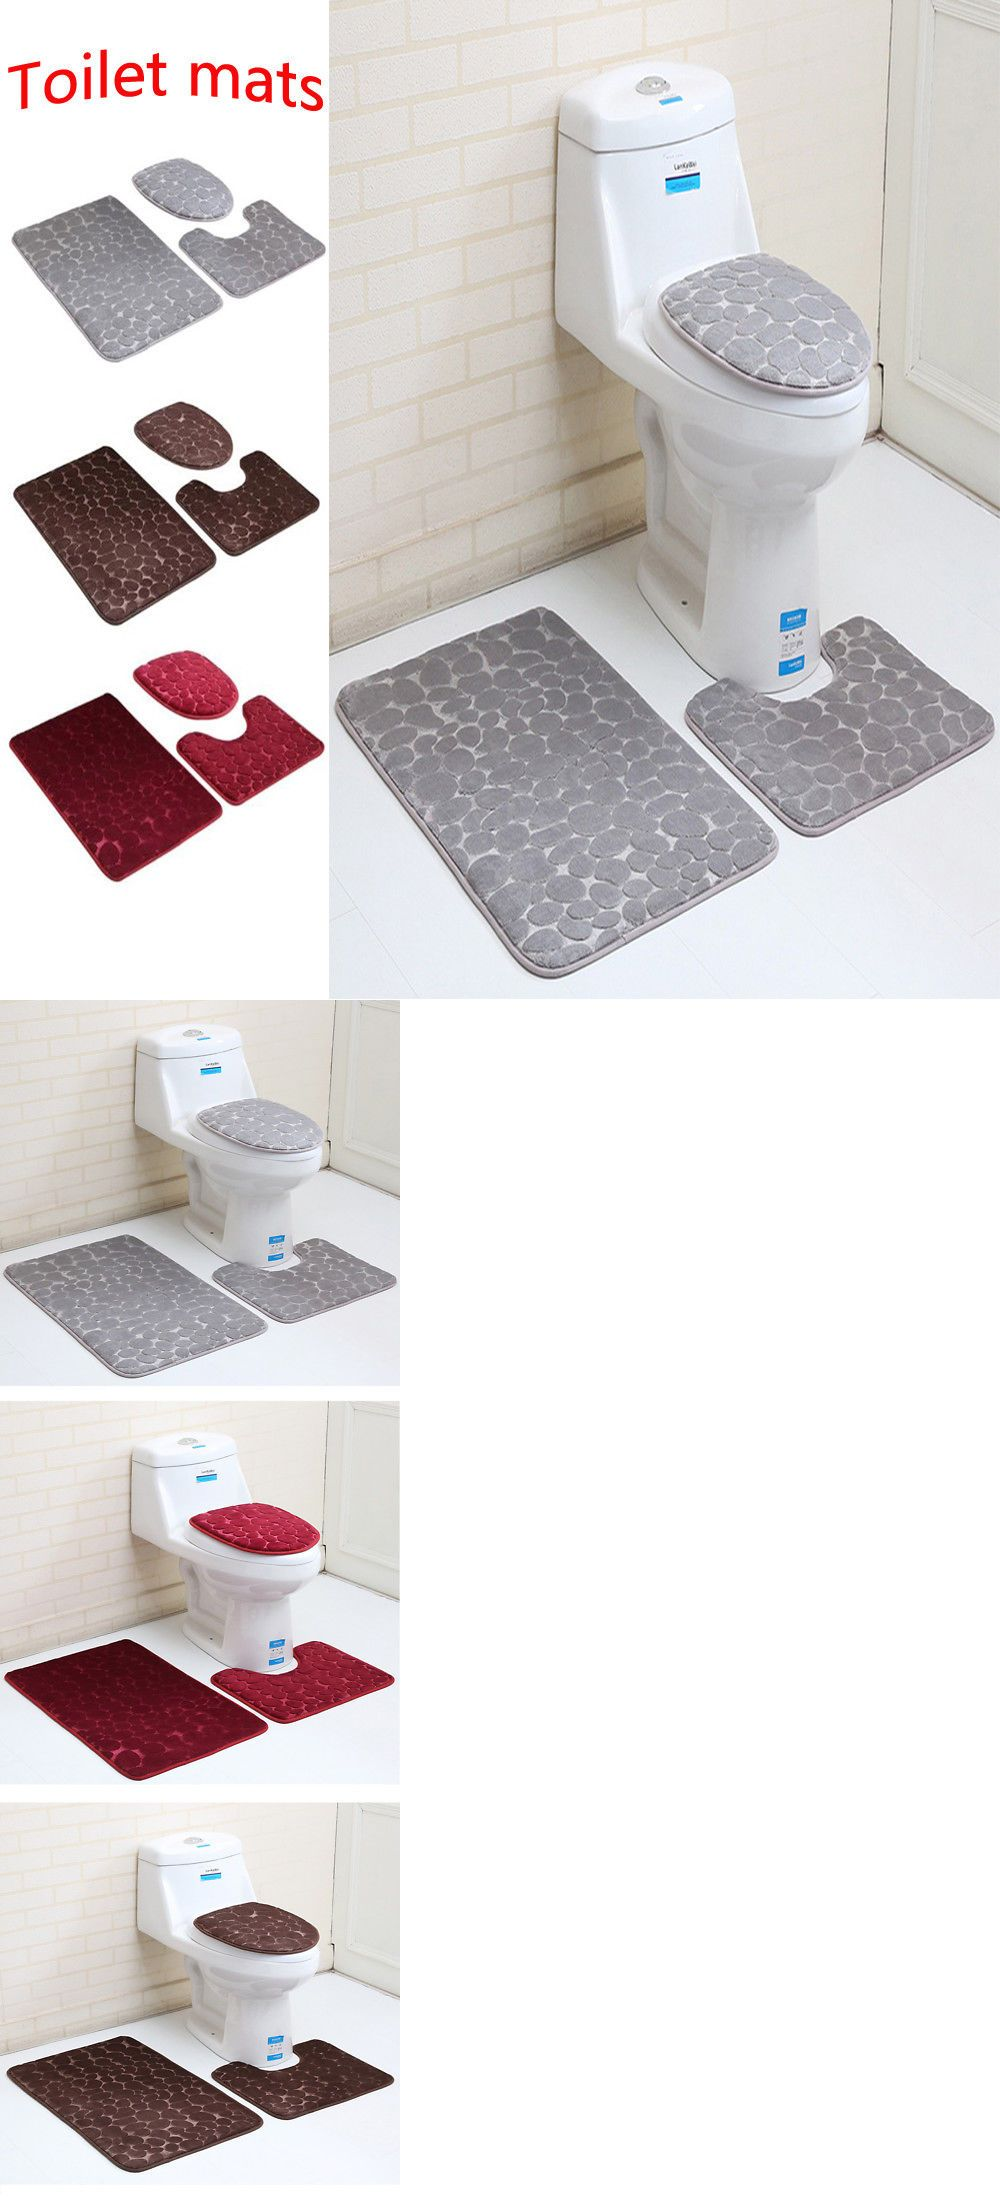 Details About 3pcs Anti Slip Bathroom Rug Mat Set Stone Pattern